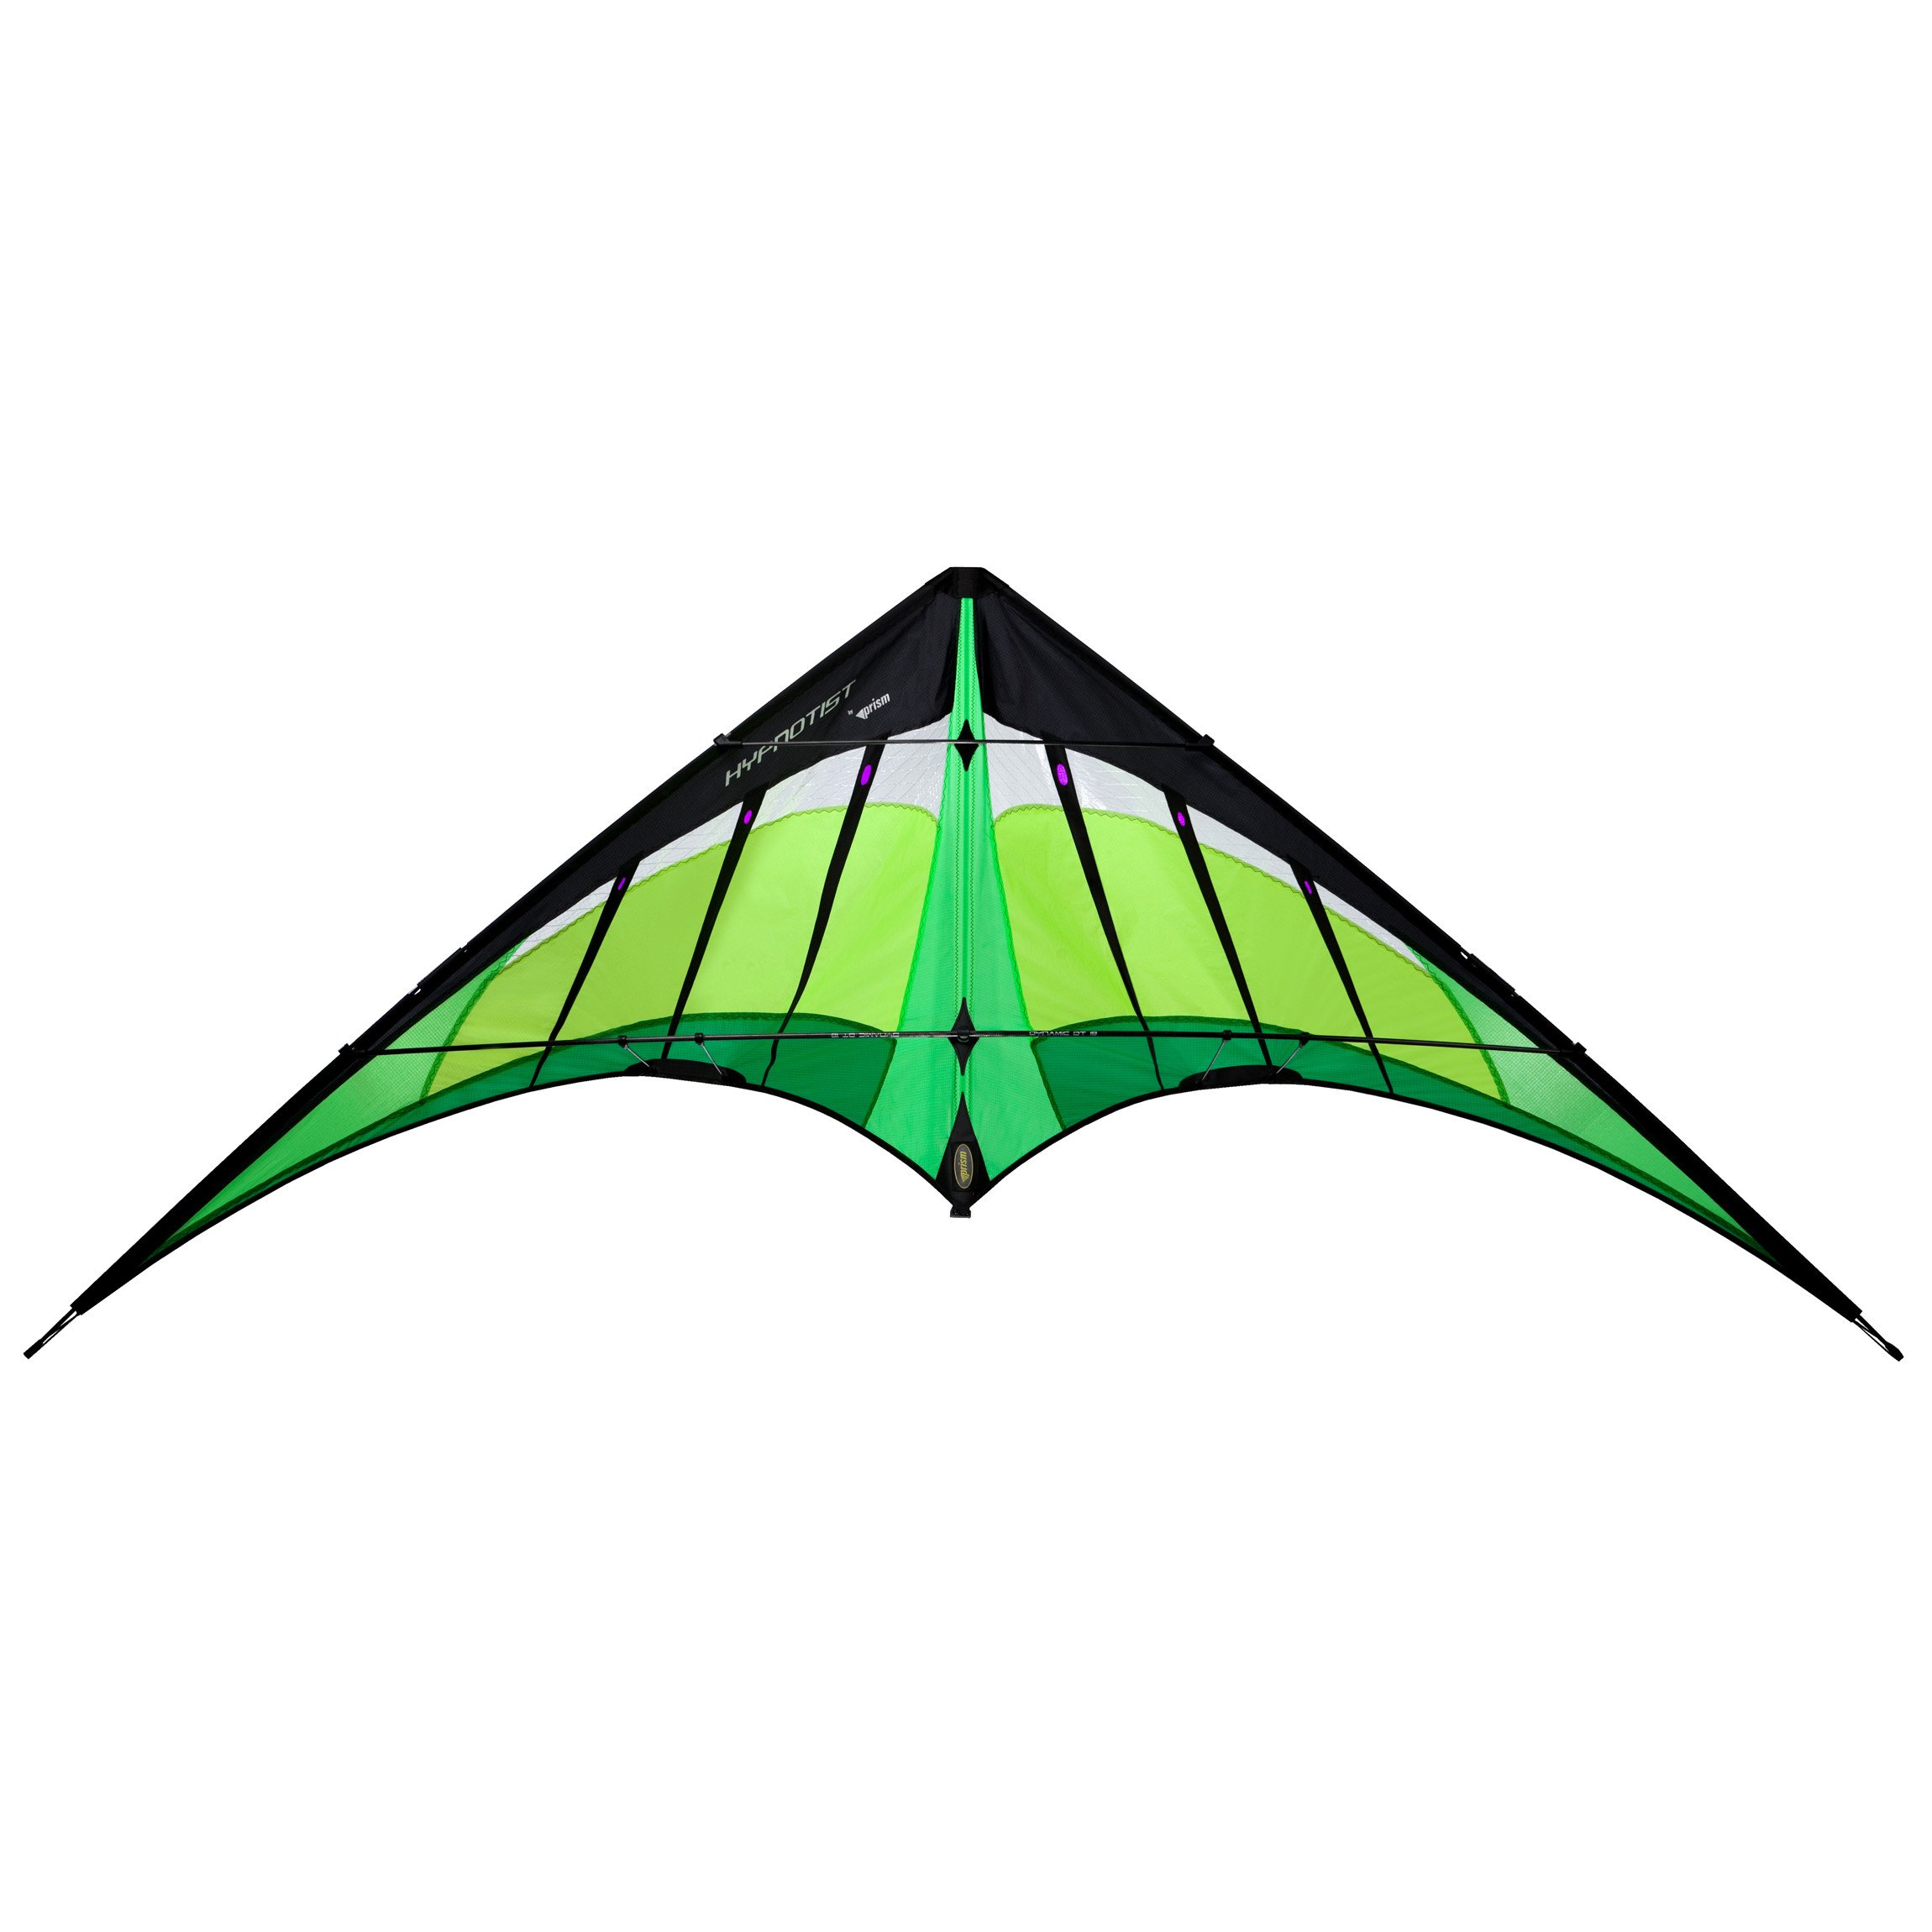 Prism Hypnotist Dual-line Stunt Kite, Citrus by Prism Kite Technology